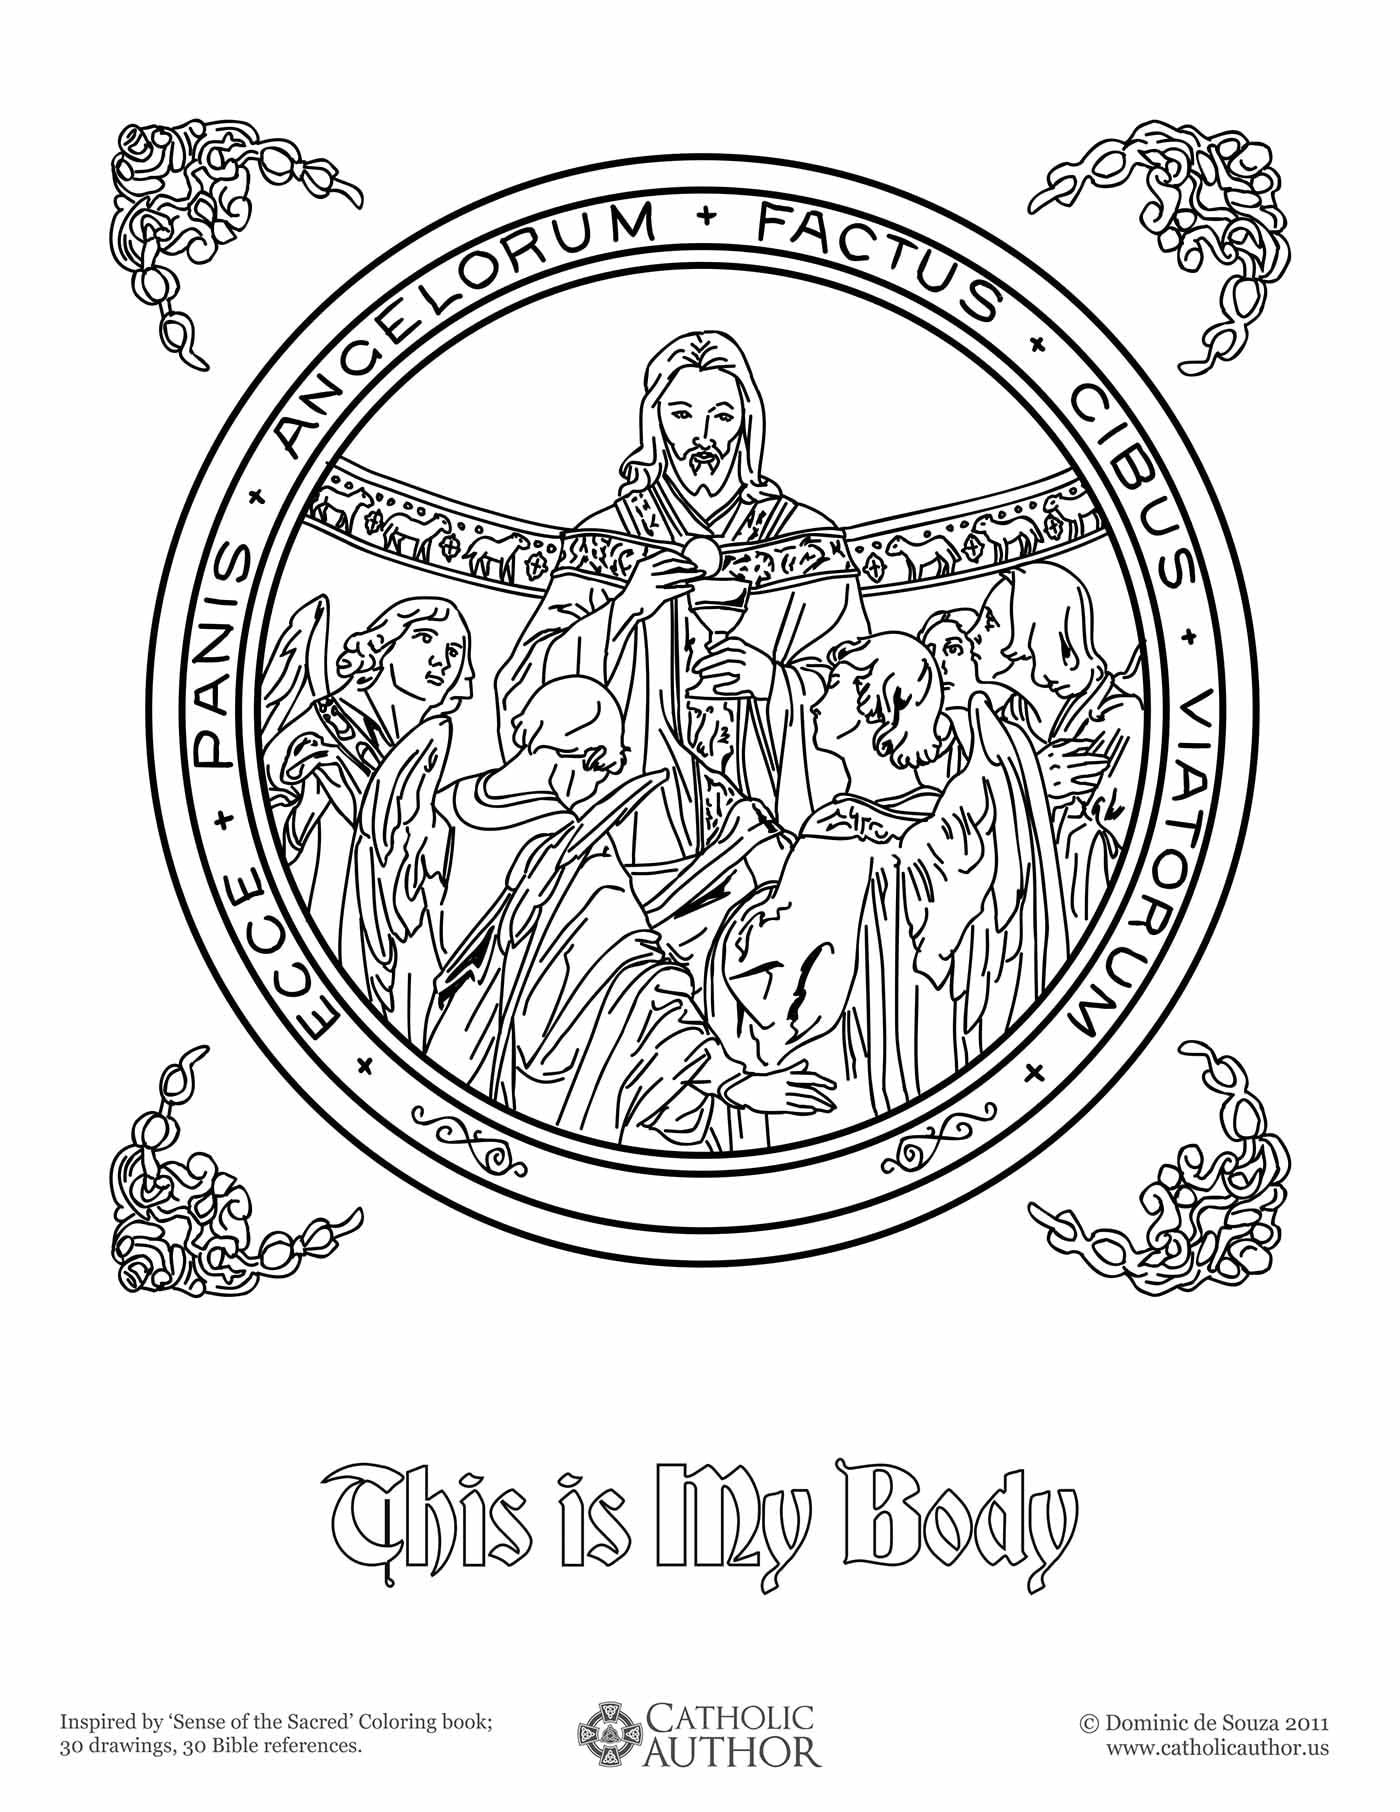 12 Free Hand-Drawn Catholic Coloring Pictures » CatholicViral